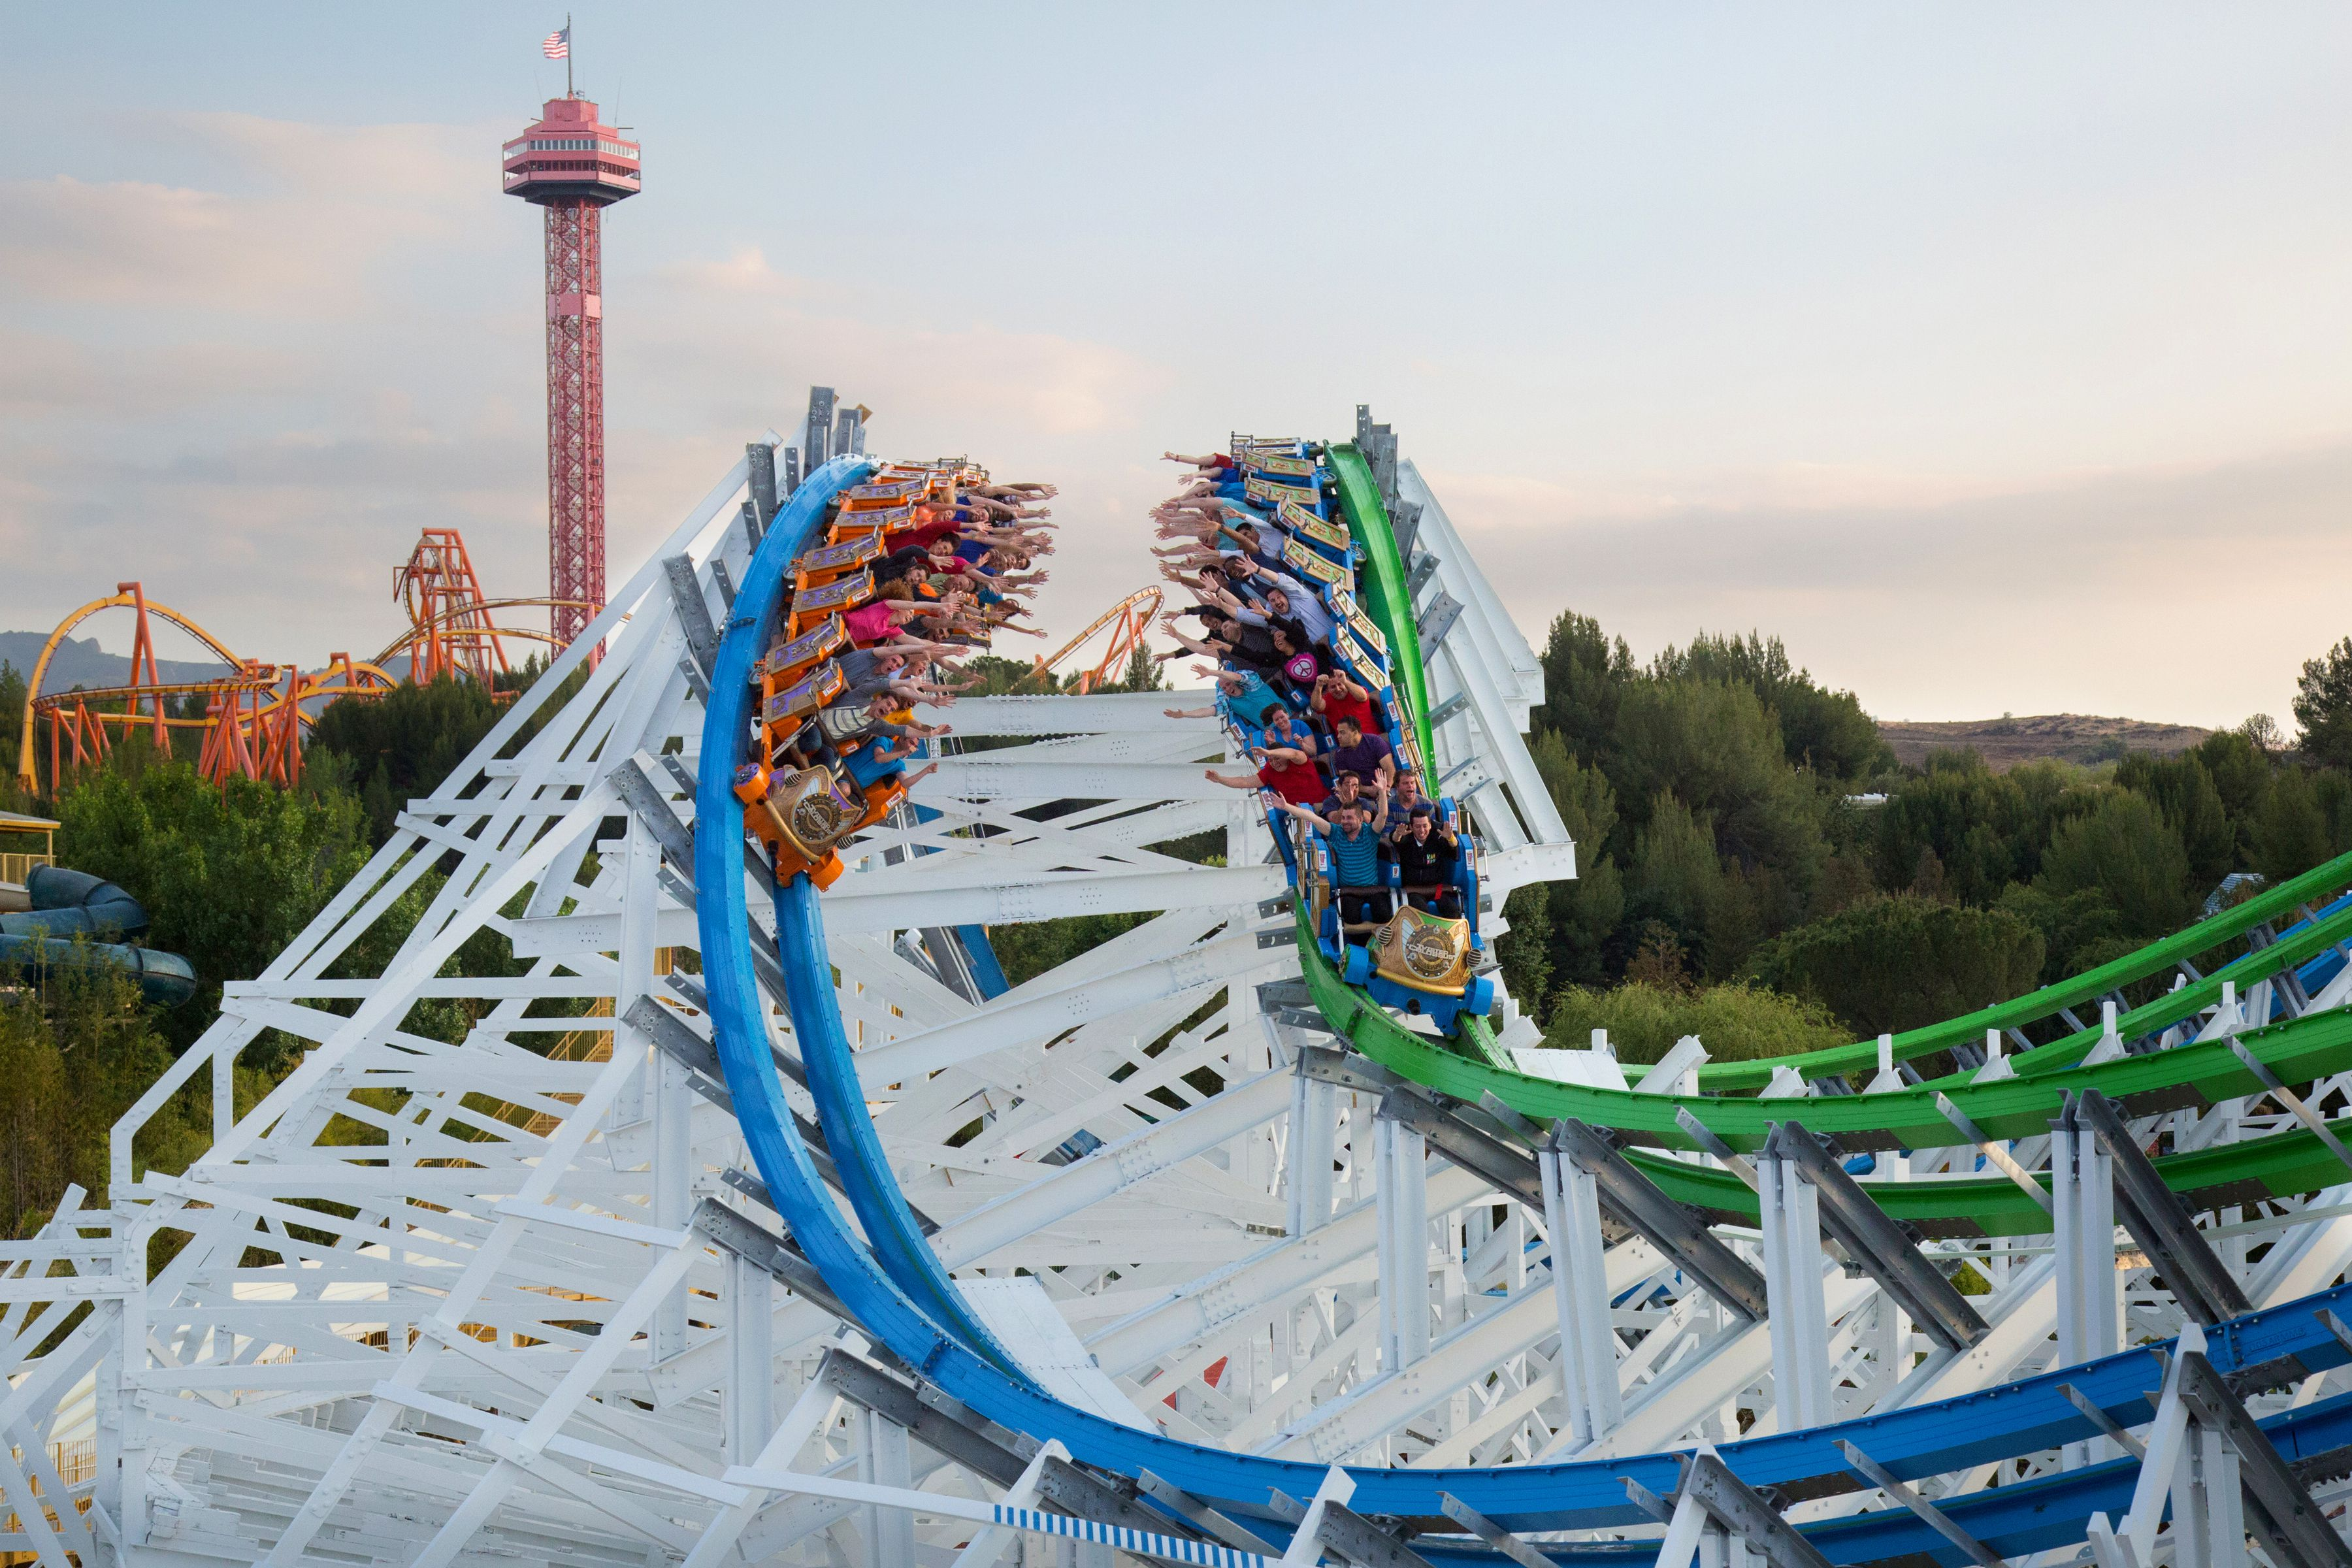 10 US Roller Coasters You Have to Ride